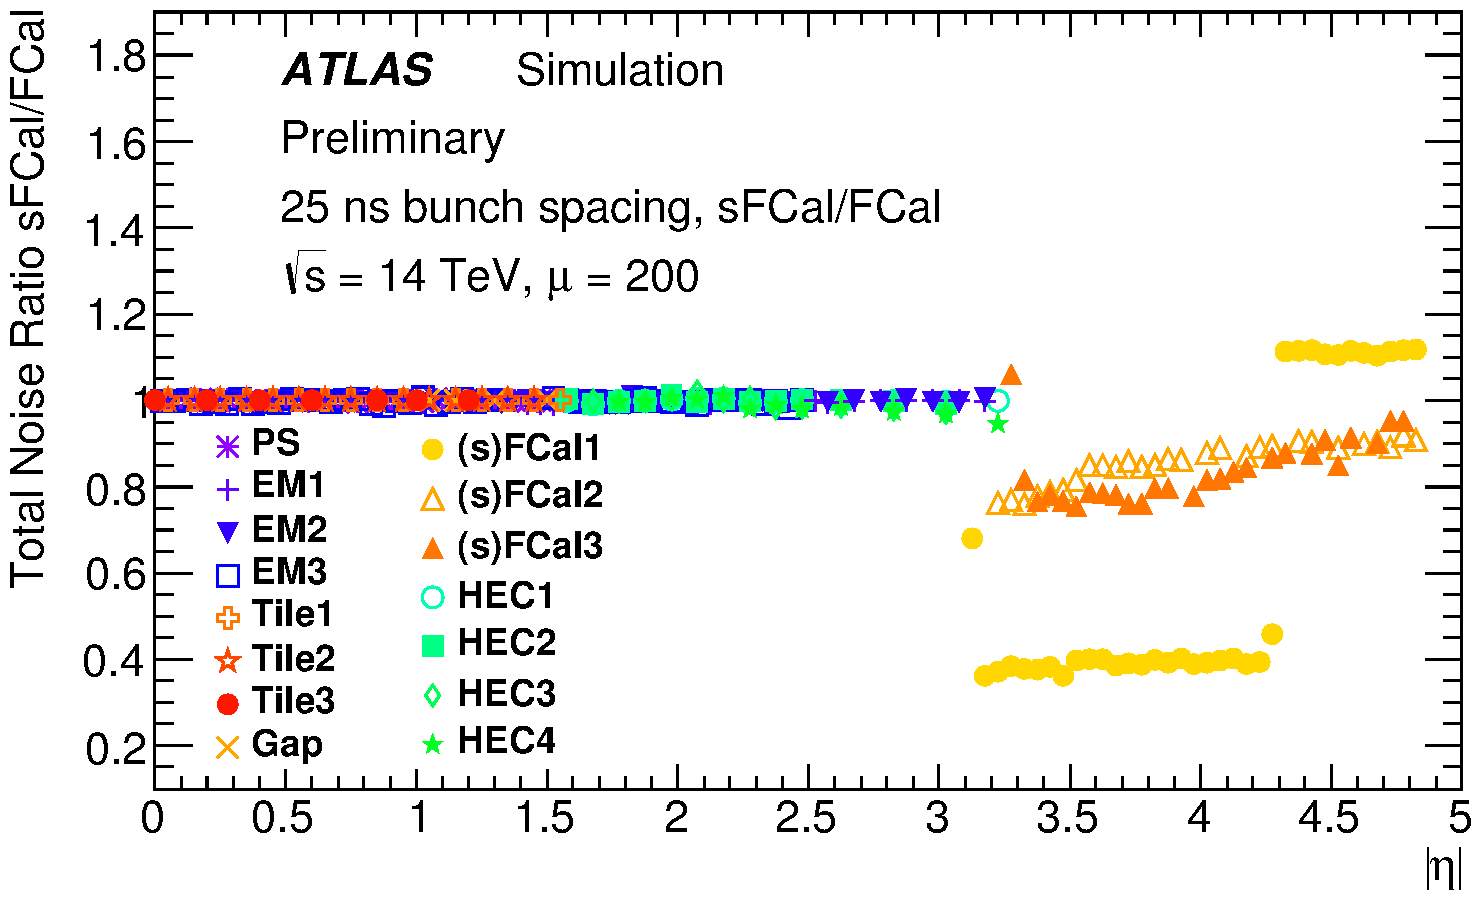 https://twiki.cern.ch/twiki/pub/AtlasPublic/LArCaloPublicResultsUpgrade/noise_tot_ratio_sFCal_SmallGaps_over_FCal_mu200-new_prelim.png